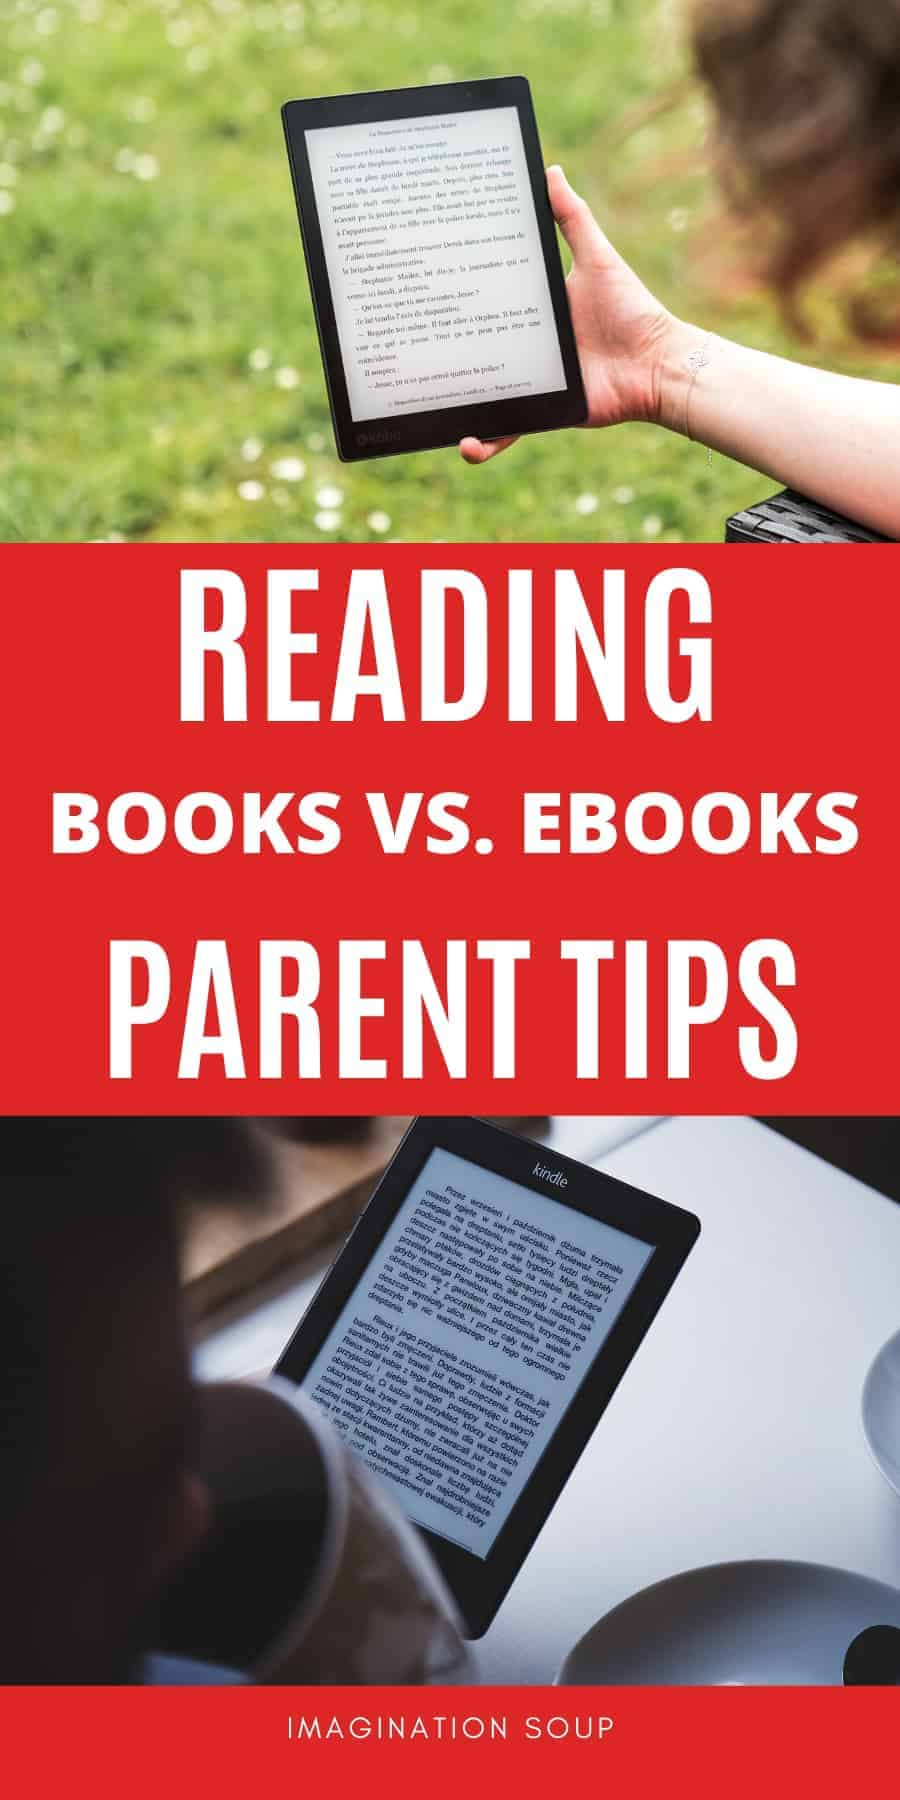 parent tips for reading ebooks